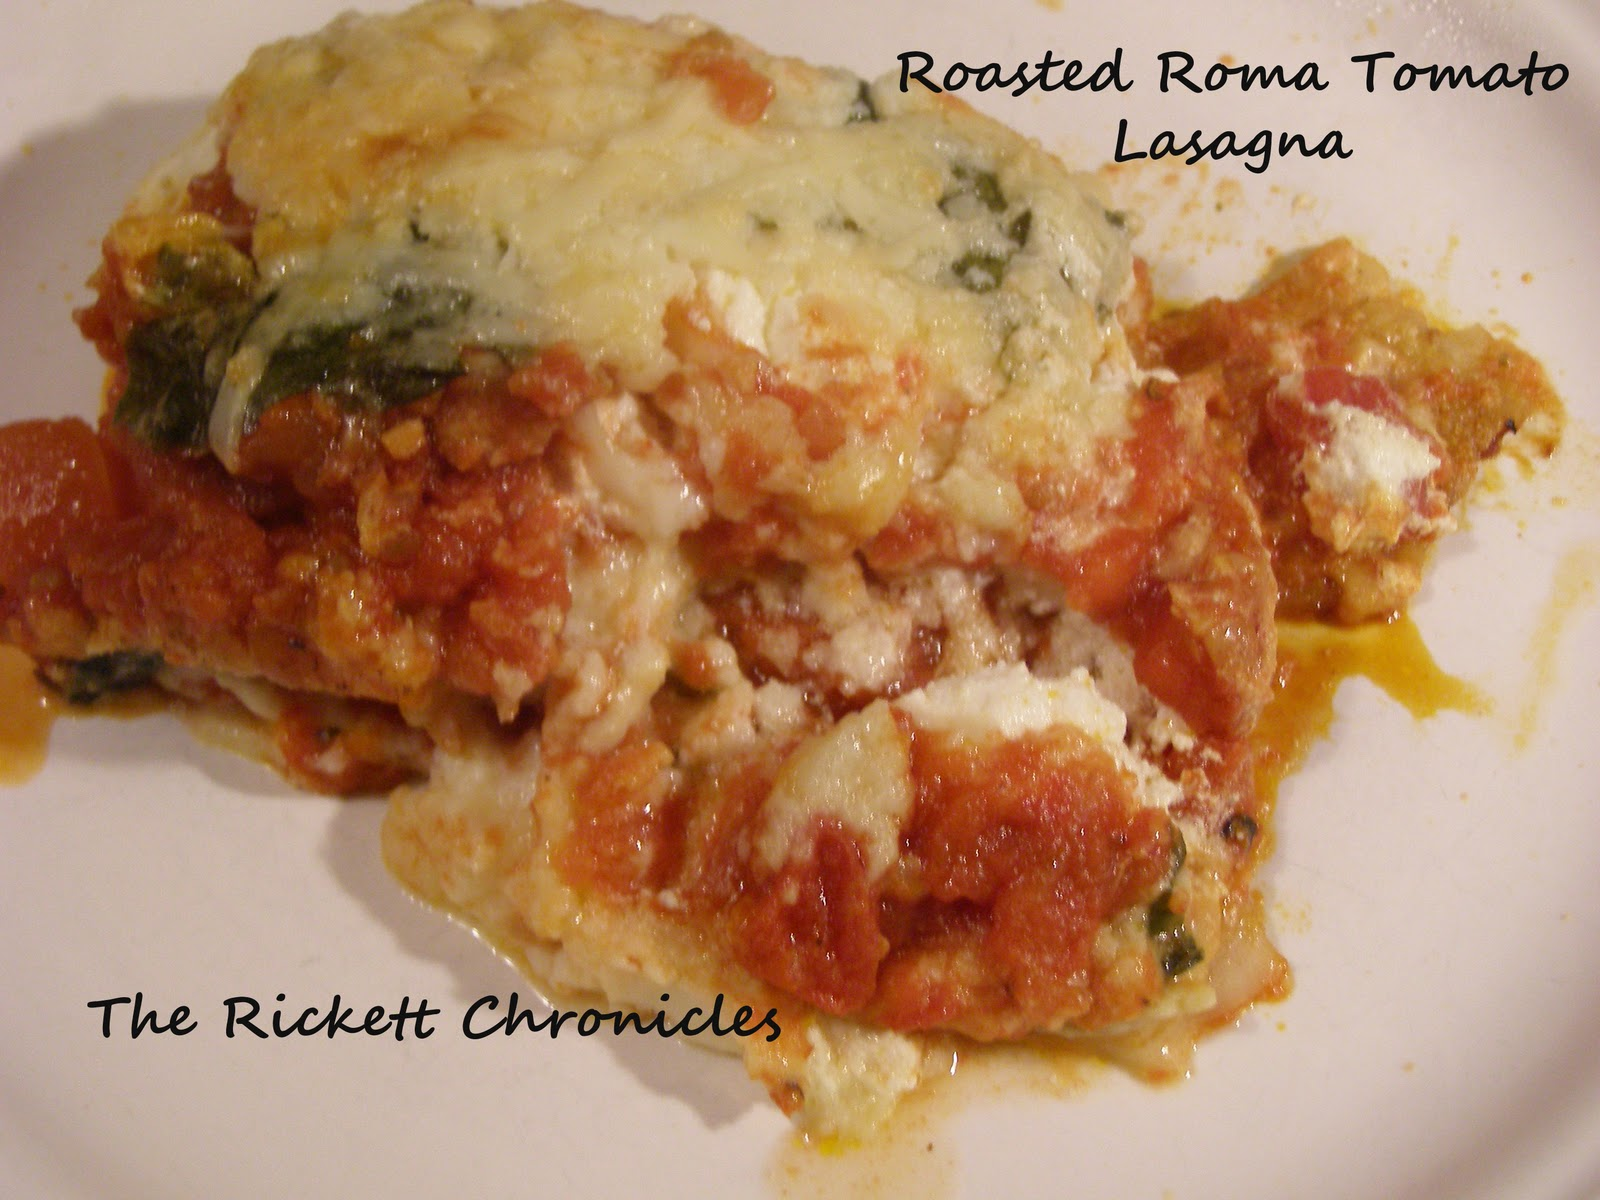 The Rickett Chronicles: Recipe Review: Roasted Roma Tomato Lasagna